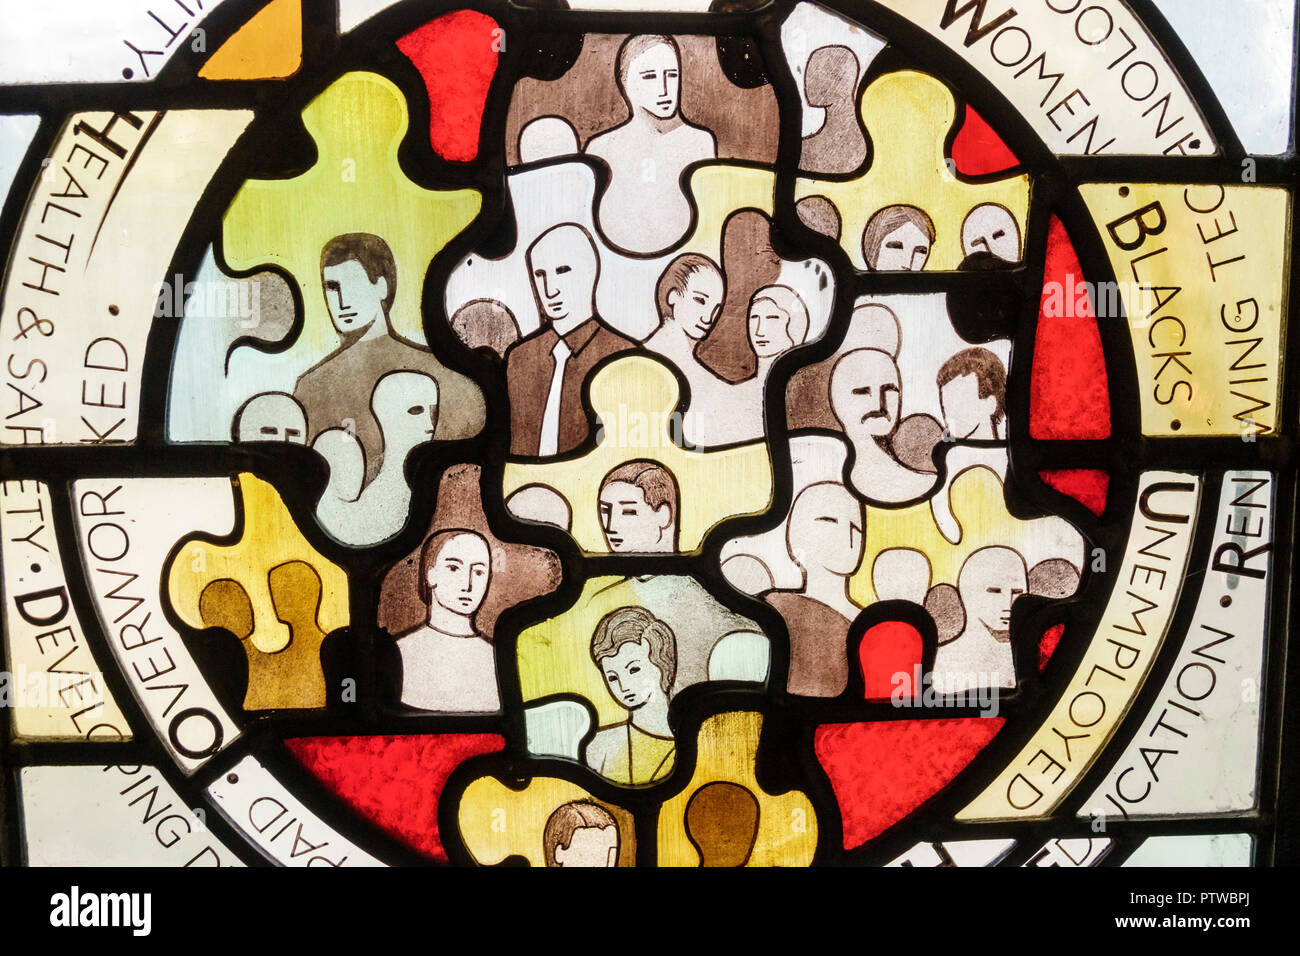 London England United Kingdom Great Britain Southwark Christ Church Anglican church stained glass window community subject matter modern - Stock Image